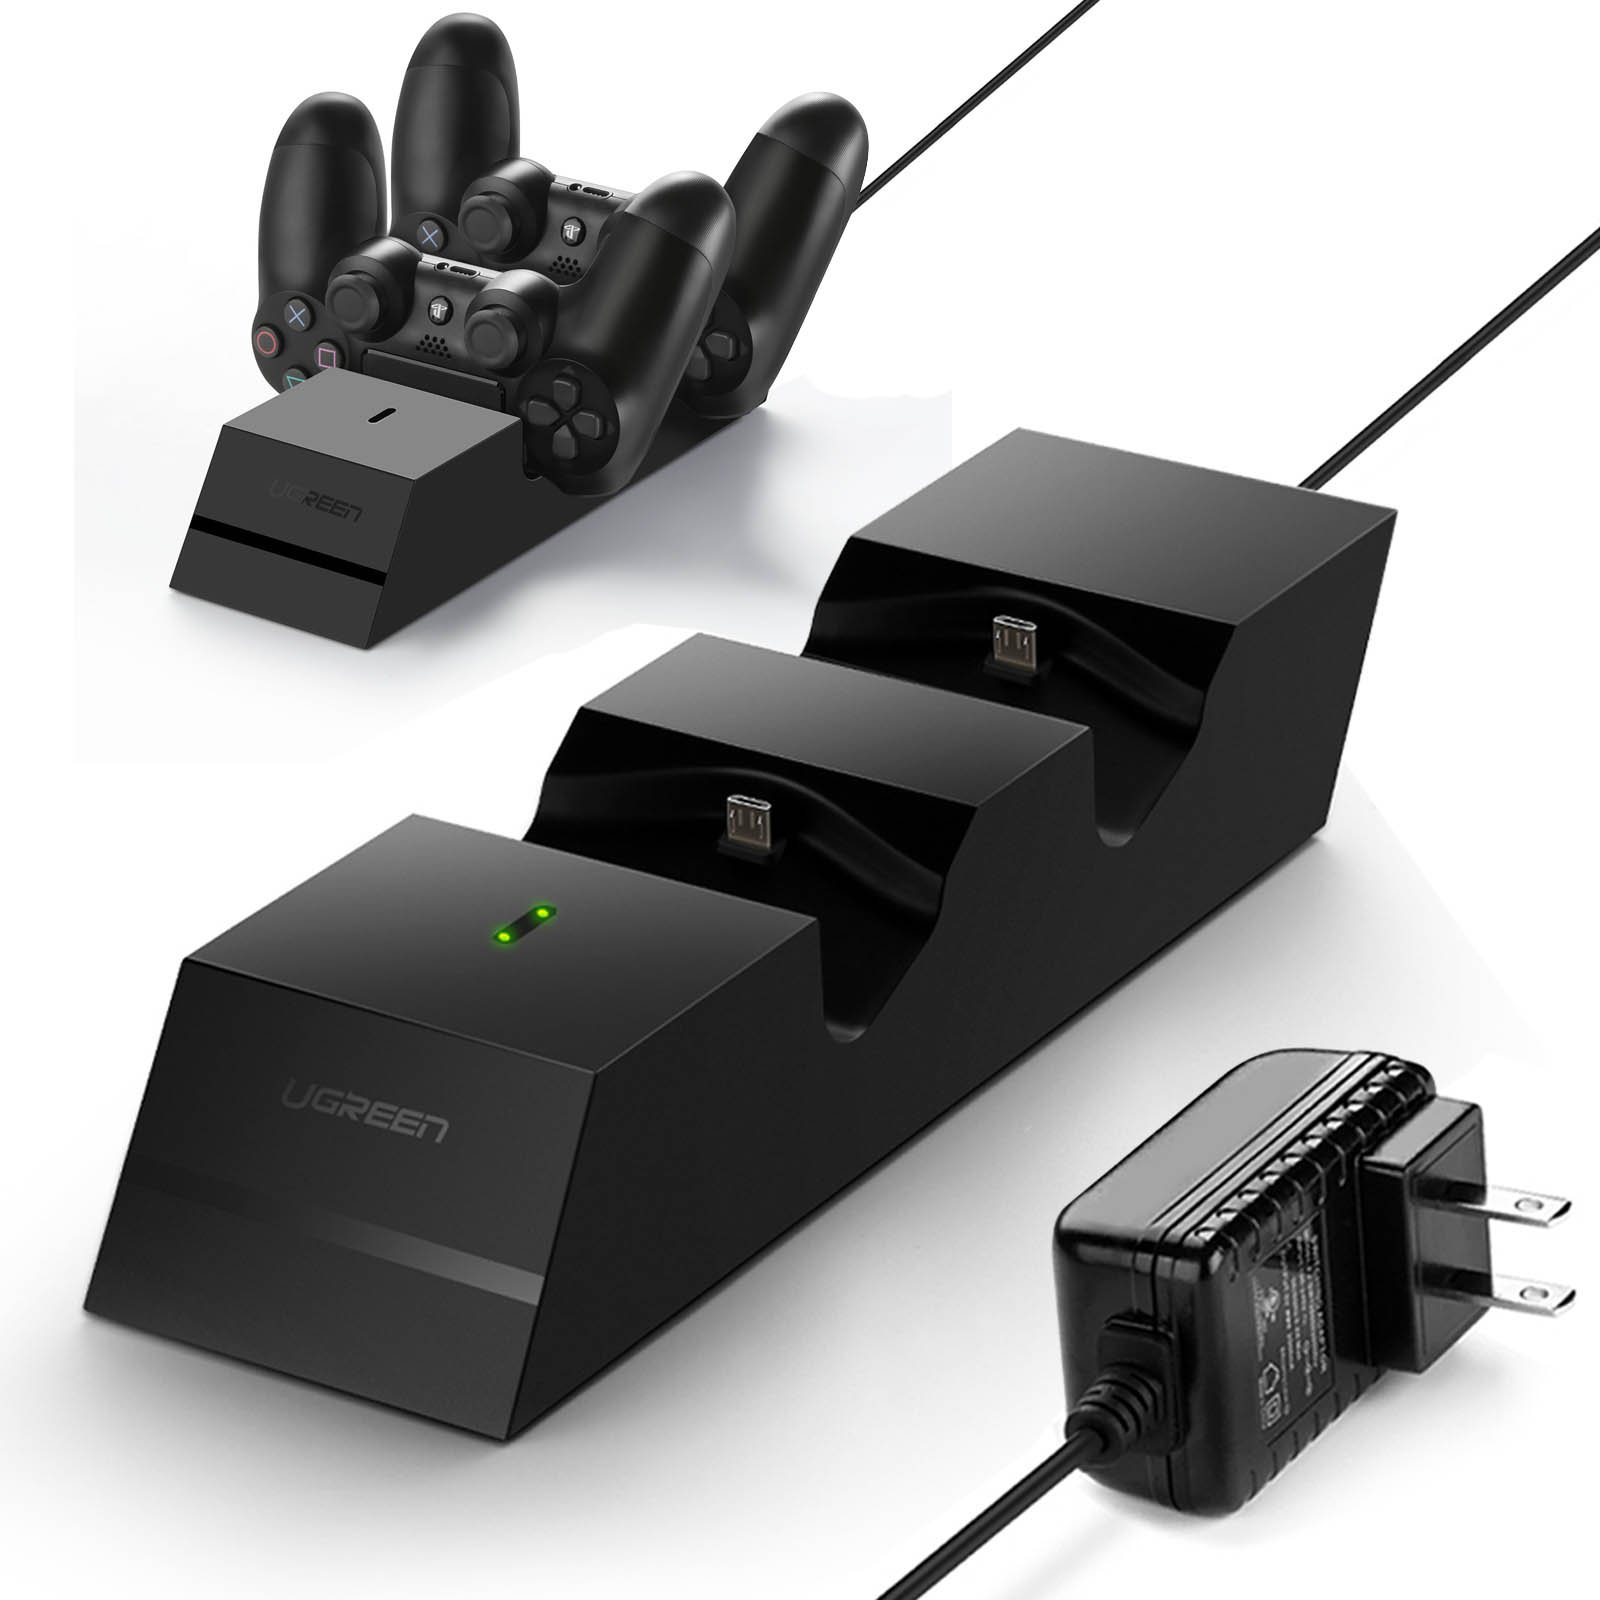 UGREEN Controller Charger PS4 Charging Station, 2.5 Hours Full Charge for 2 Controllers, DualShock 4 Charger Dock for Playstation Slim, PS4 Pro Controller with AC Adapter - US plug